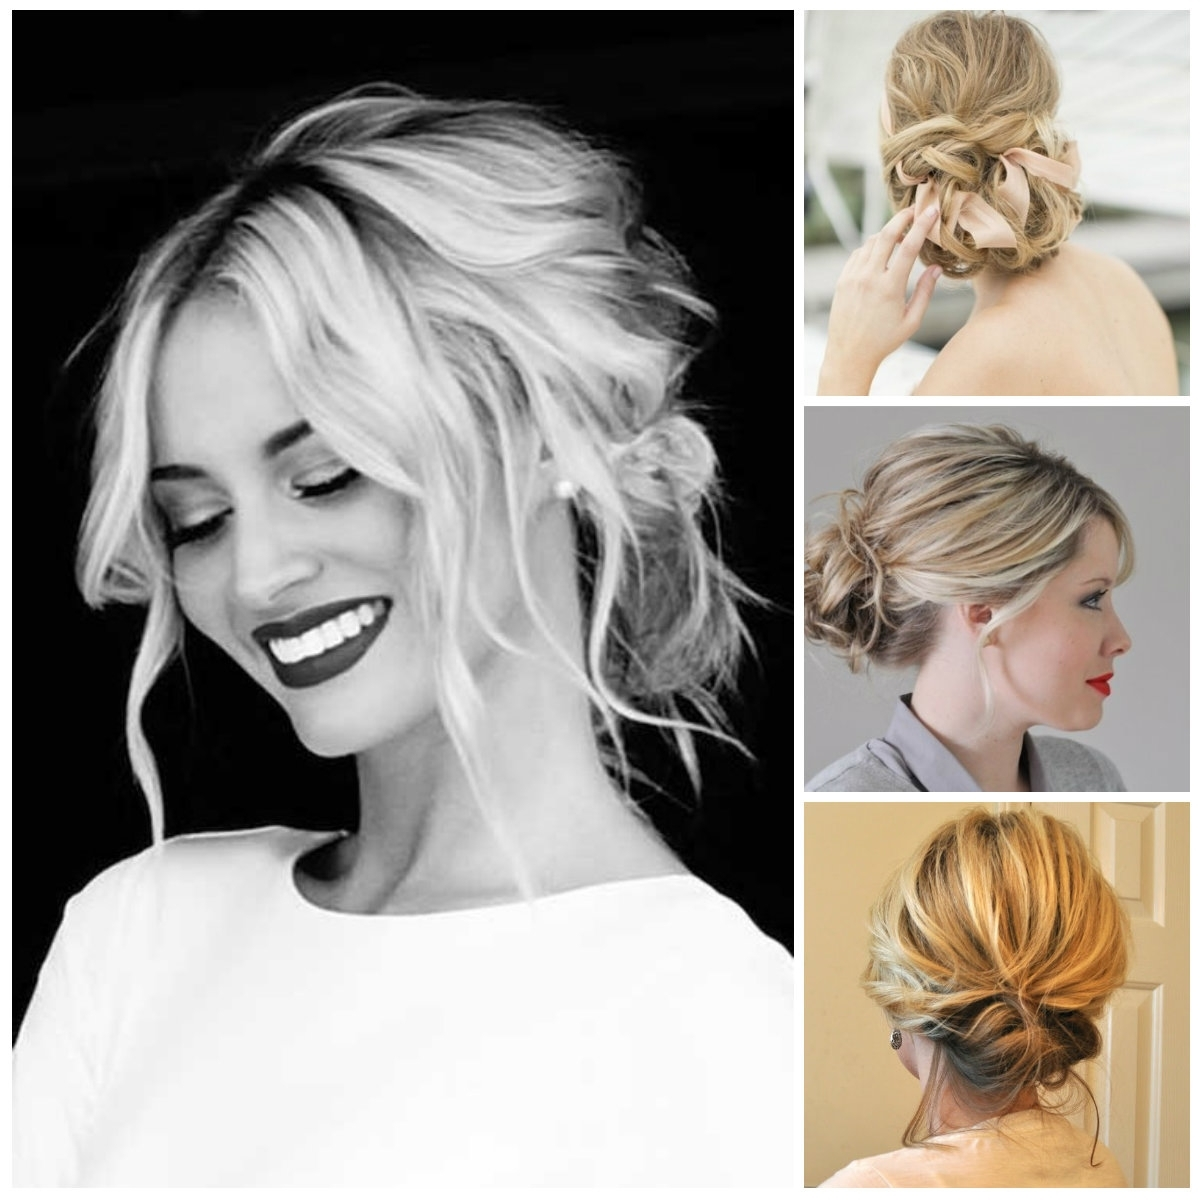 Updo Hairstyles For Medium Length – Hairstyle For Women & Man Within Updo Hairstyles For Shoulder Length Hair (View 14 of 15)